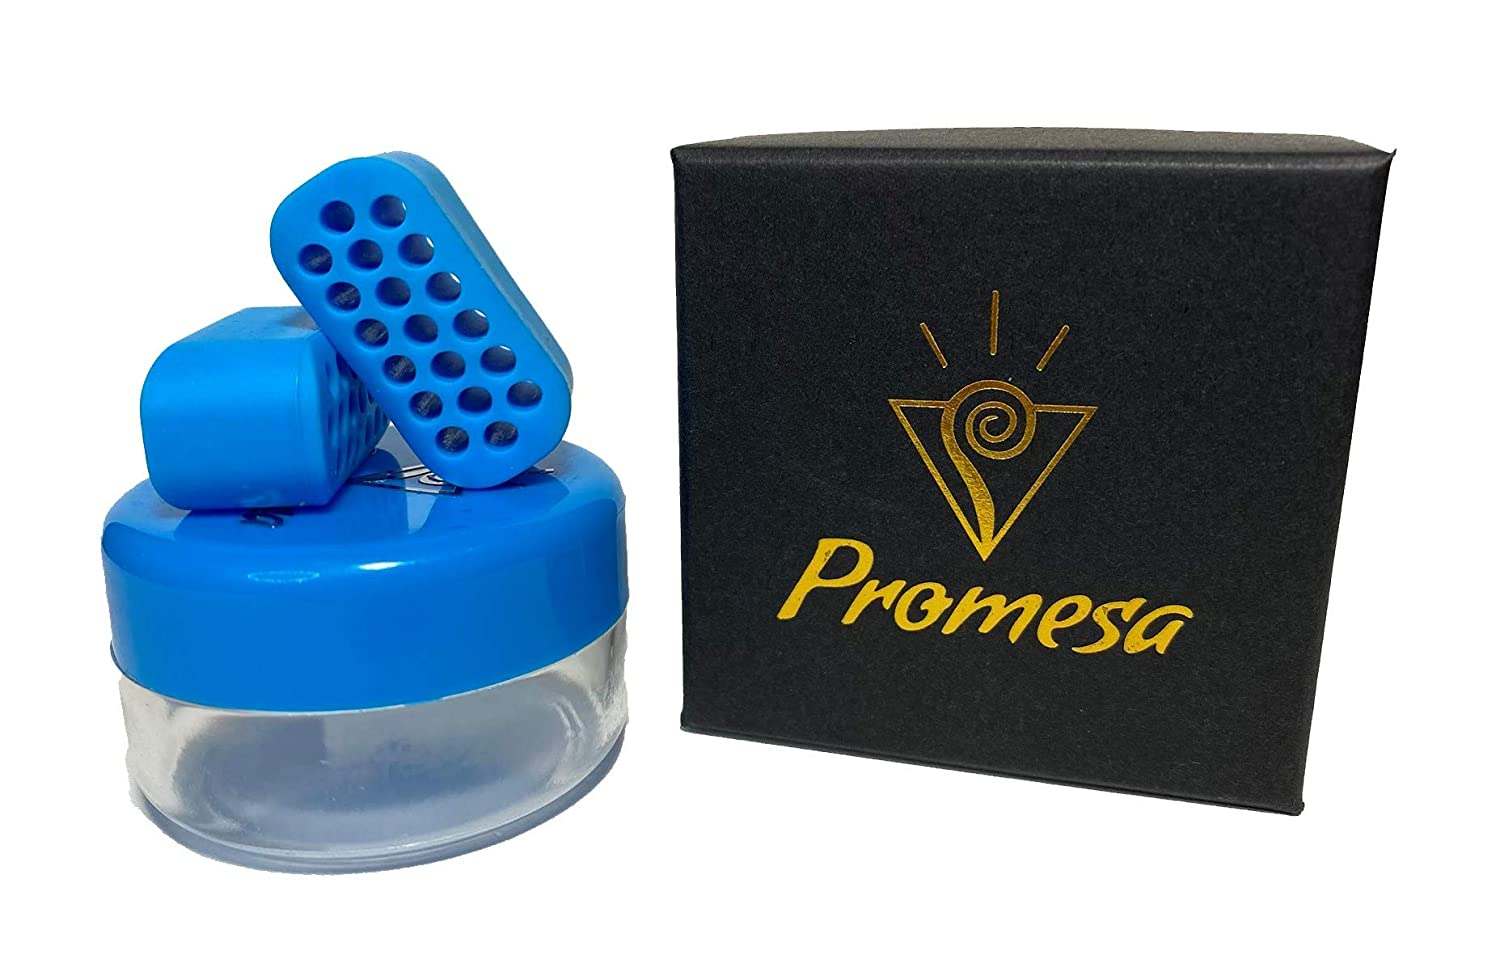 Promesa Newly Designed Jaw Exerciser for Men and Women, High-Elasticity Food-Grade Silica Gel. Best Jaw Workout to Eliminate Double Chin and Tone Face and Neck, Shape & Chisel Jawline.